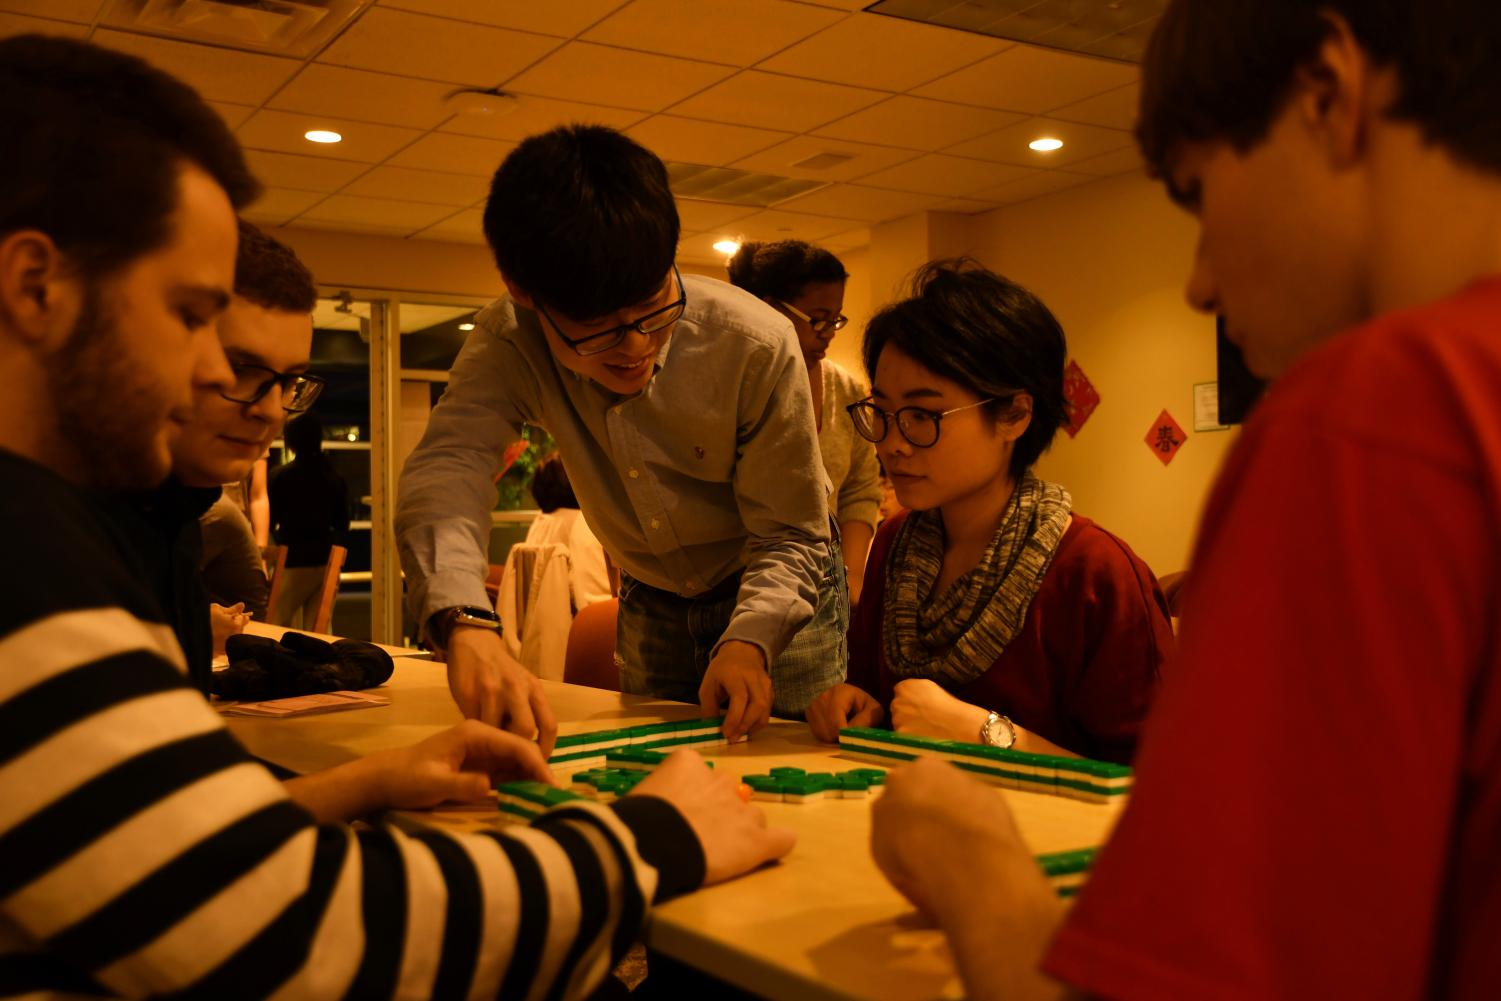 Xingbang Liu, '20, and Chih-Jung Chen, Chinese language teaching assistant, set up mahjong and teach Alec Tolmachoff, '20, Thomas Cassidy, '21, and Malcolm Willig, '21, how to play.